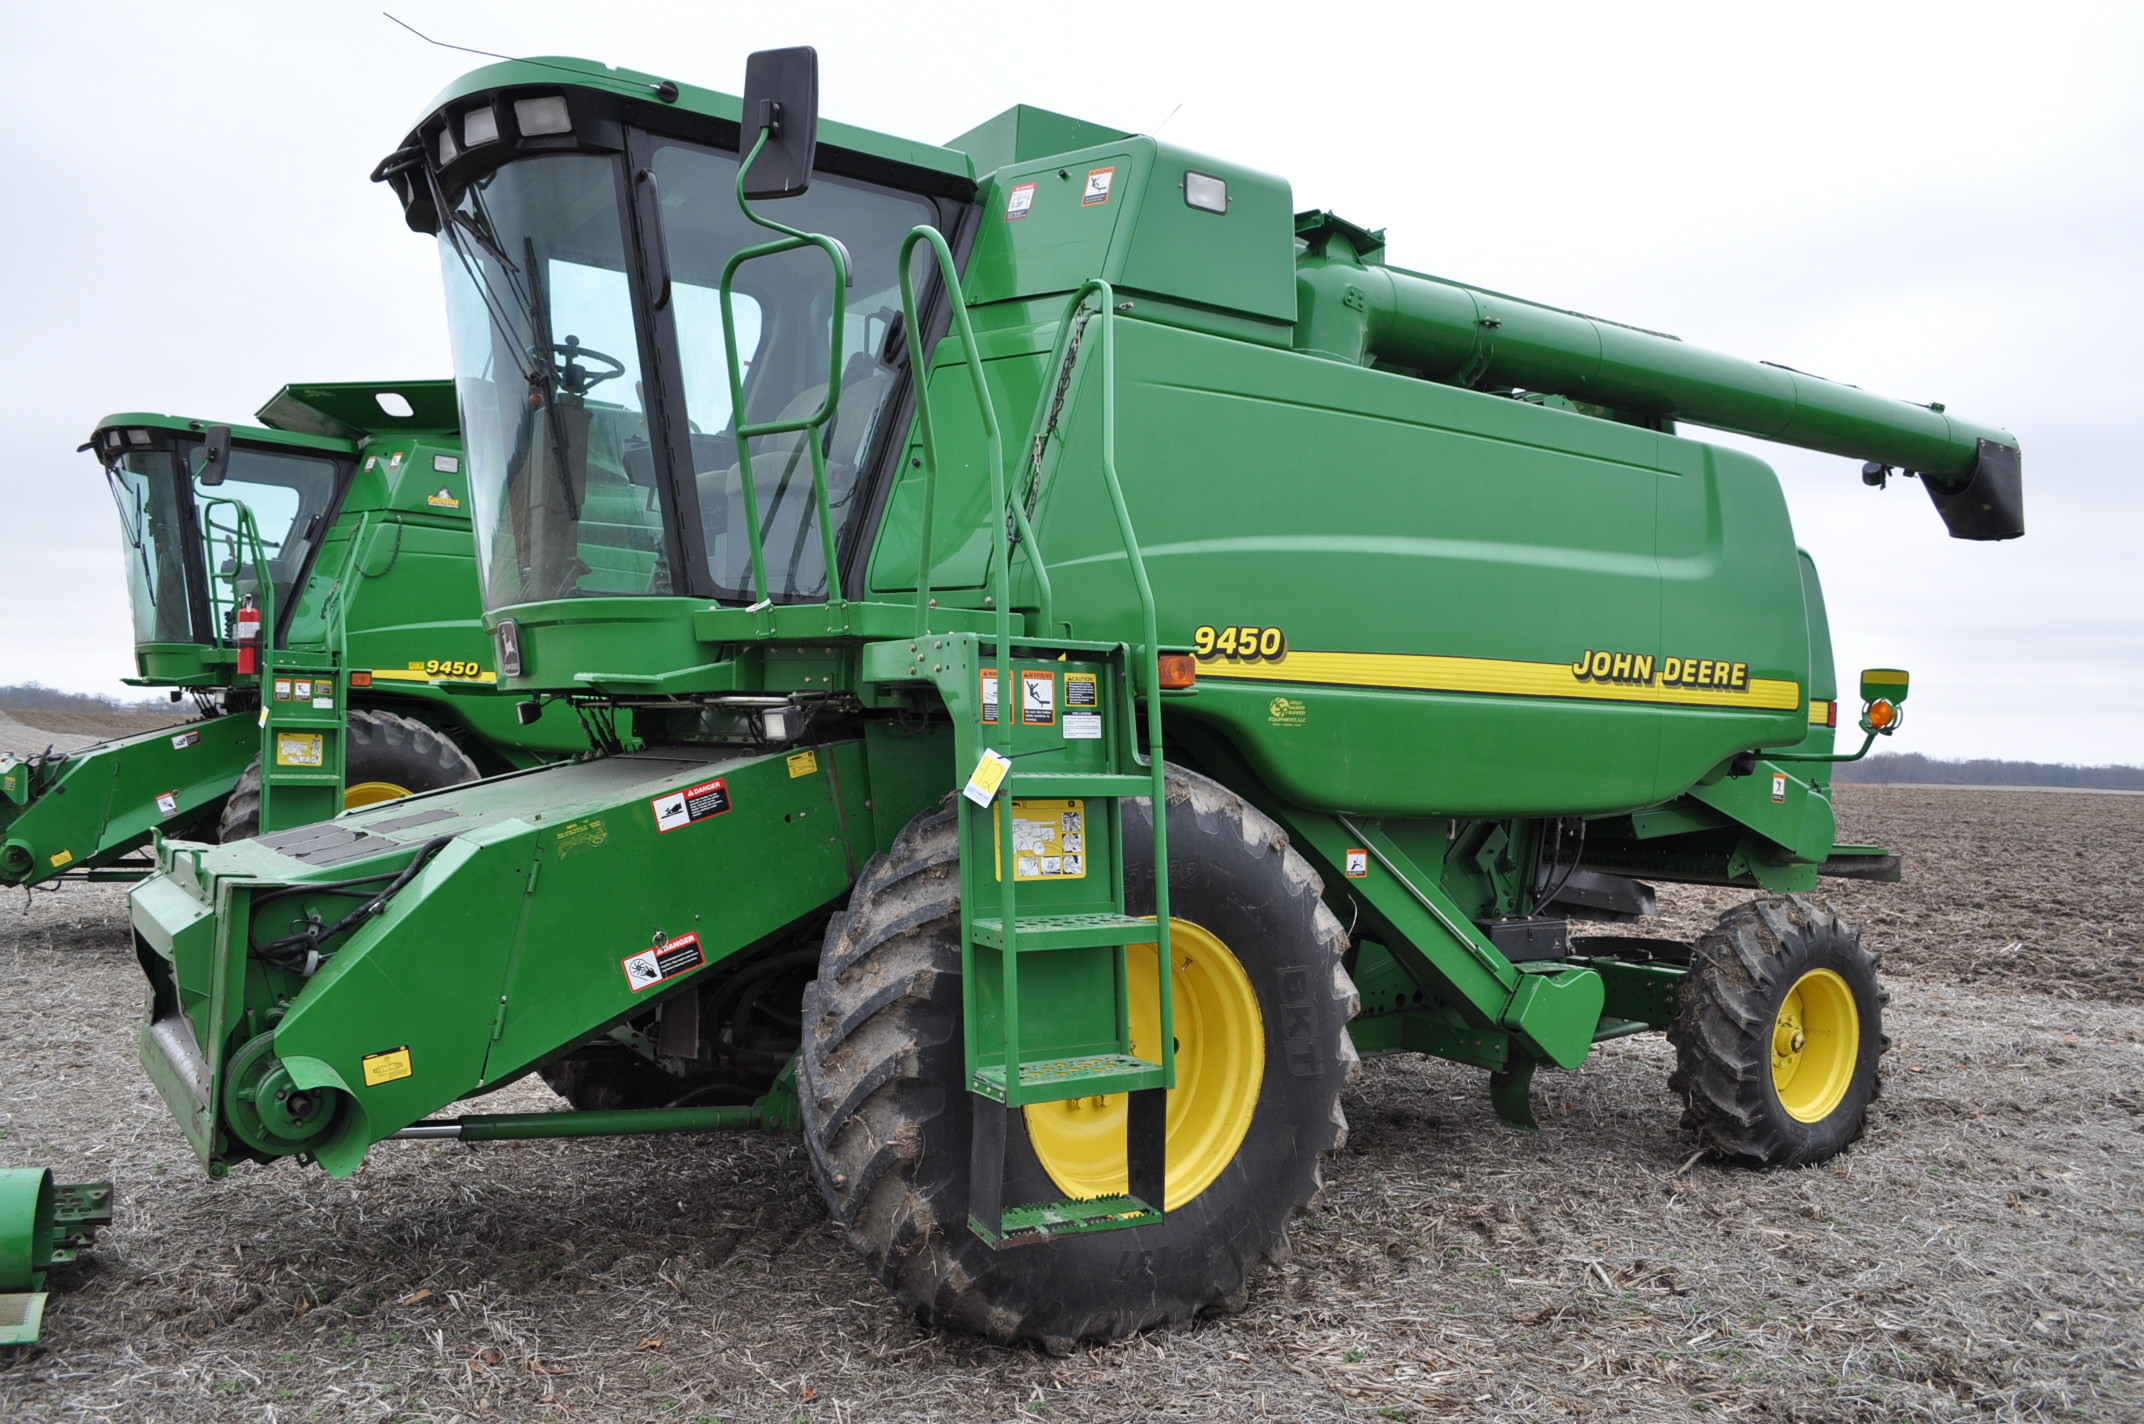 John Deere 9450 combine, NEW 24.5-32 drive, NEW 14.9-24 rear, chopper, spreader, 3335 engine hrs,